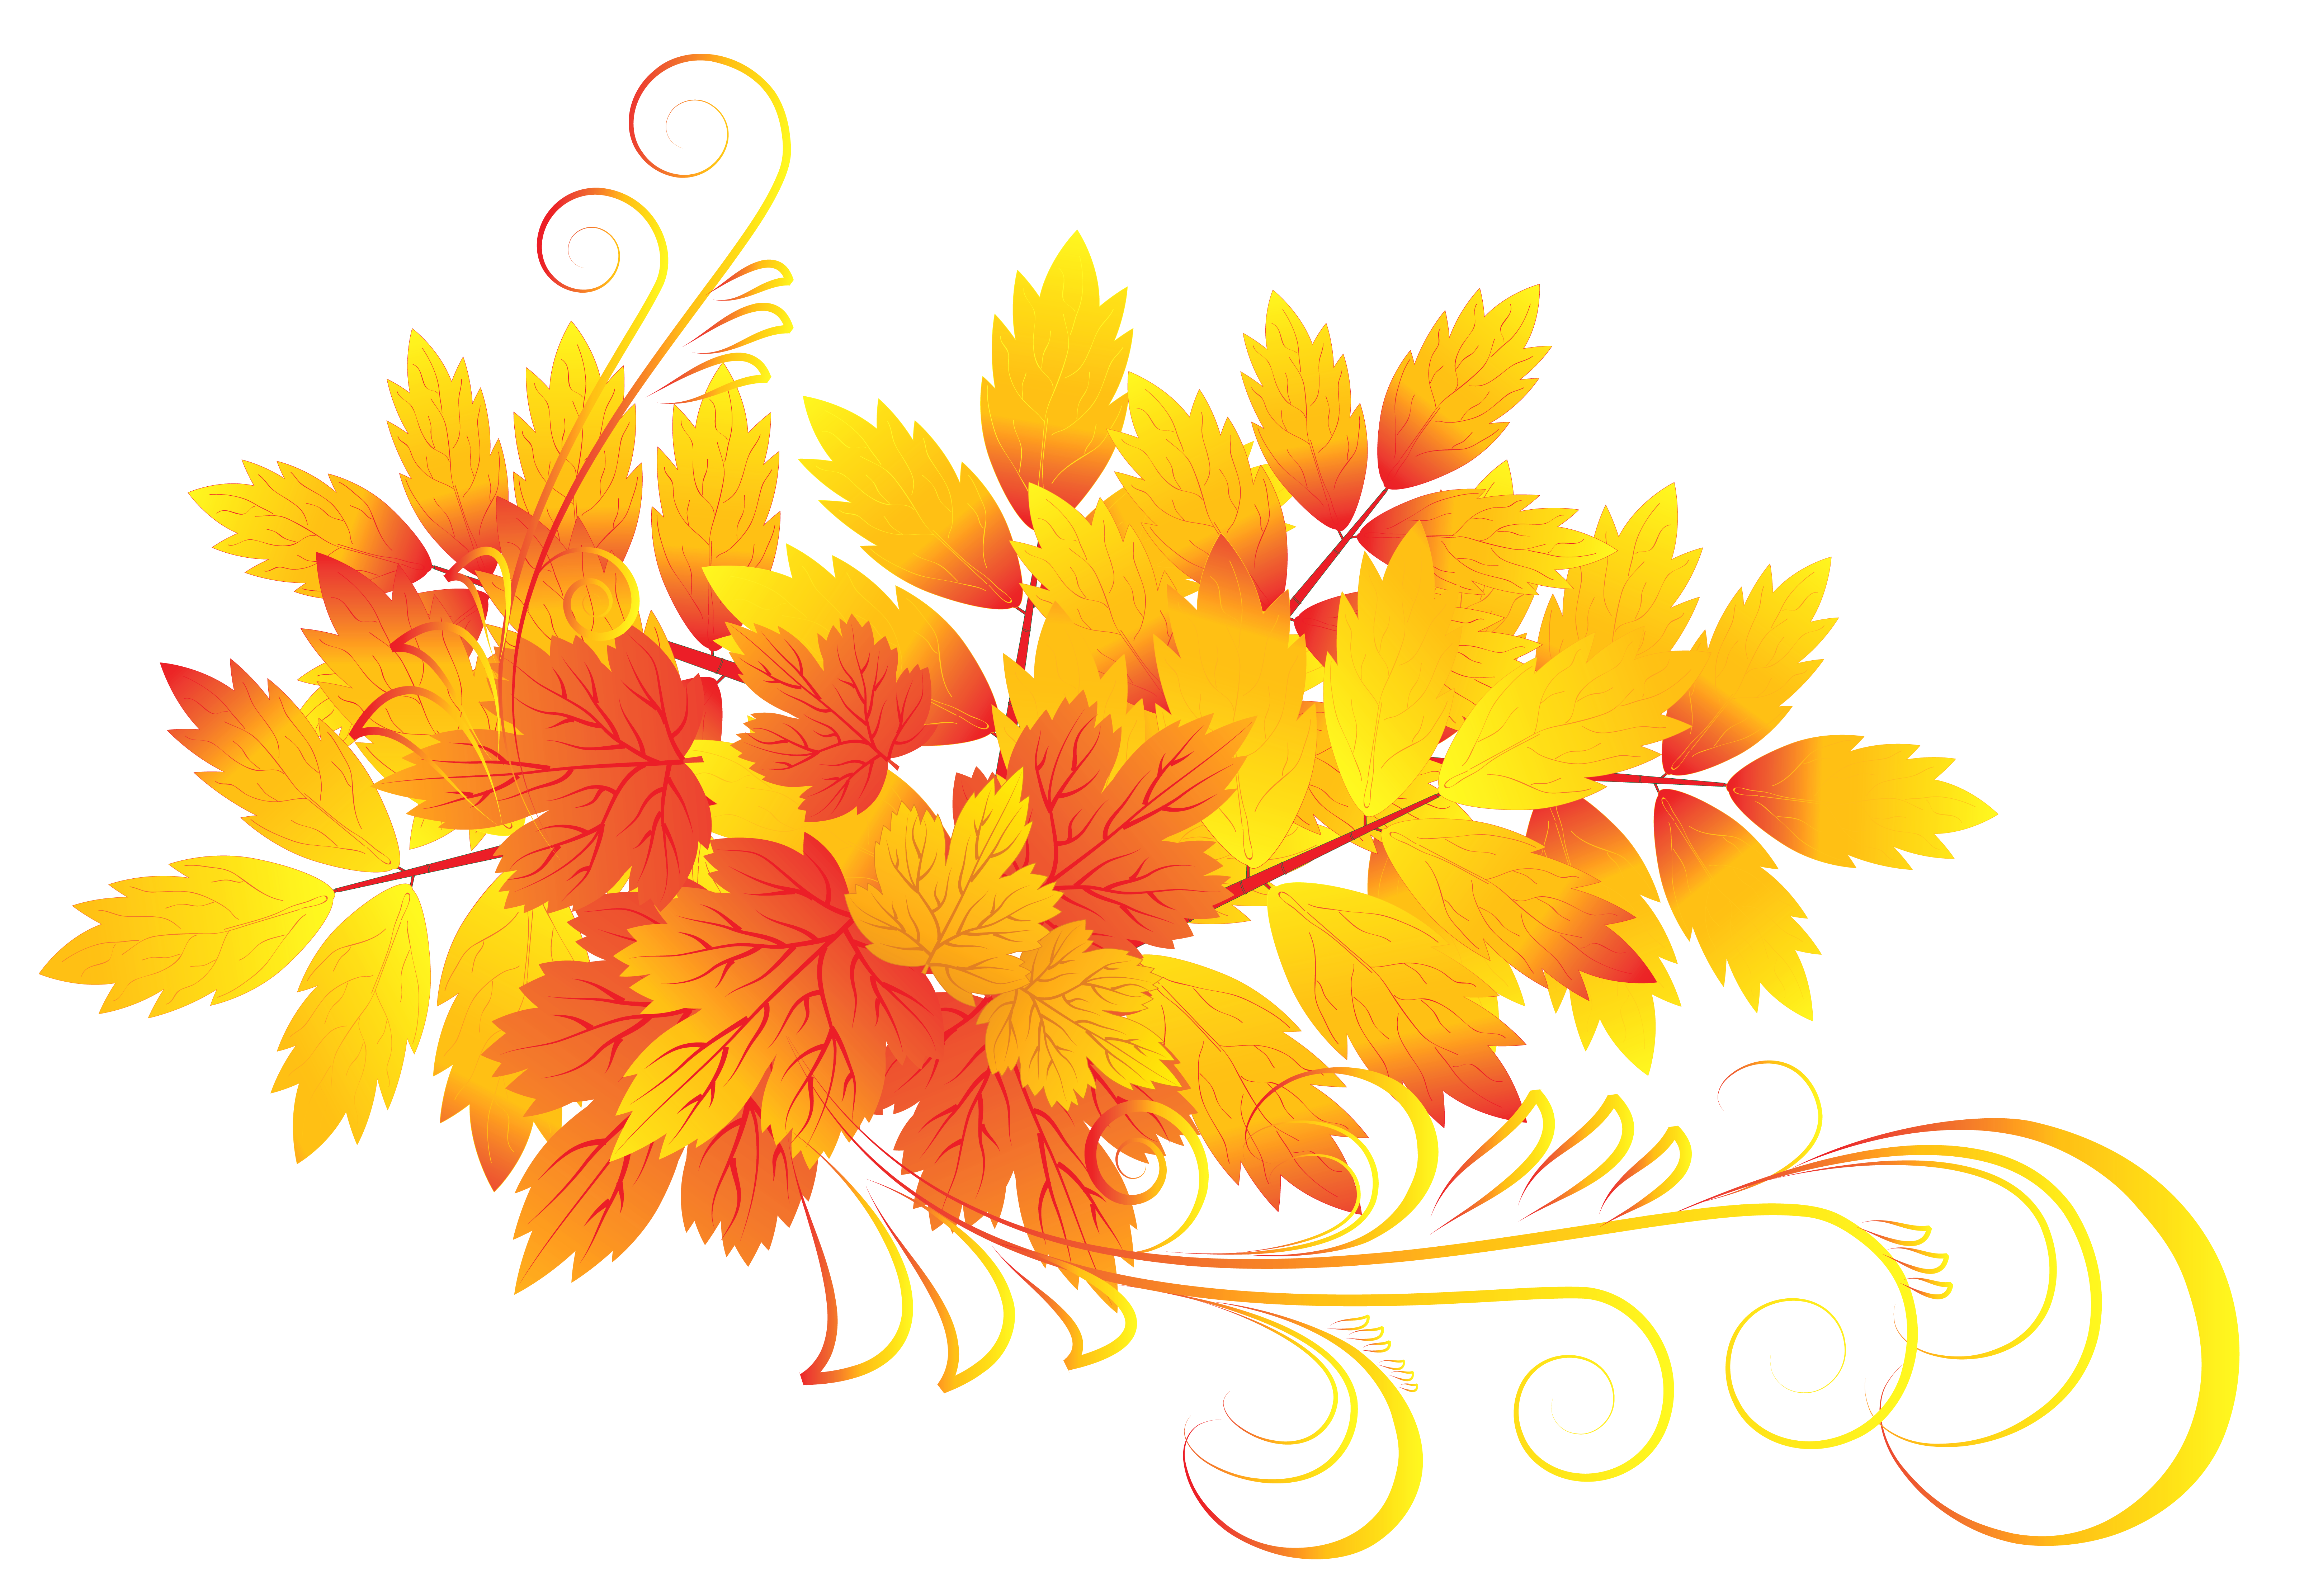 Pretty Fall Backgrounds Png - Autumn leaf color Clip art - Autumn Leaves PNG Clipart png ...